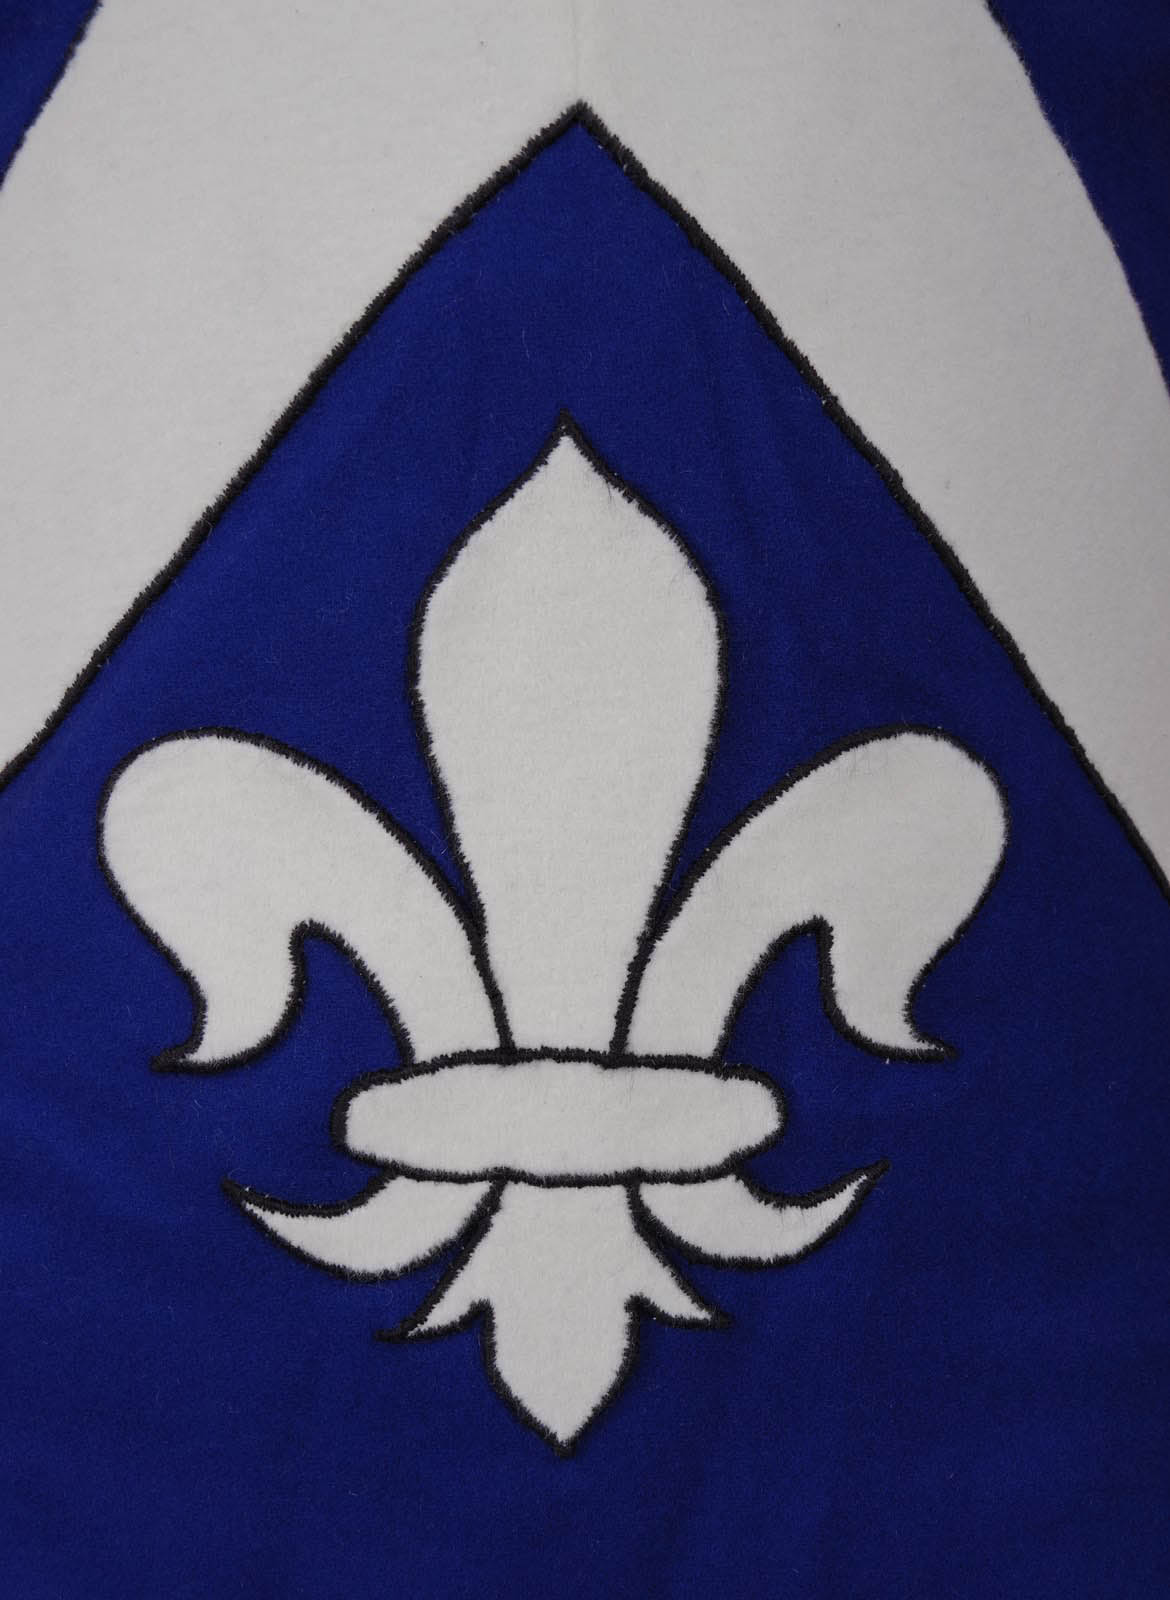 Gambeson blue motto gambeson blue embroidery gambeson by steel mastery